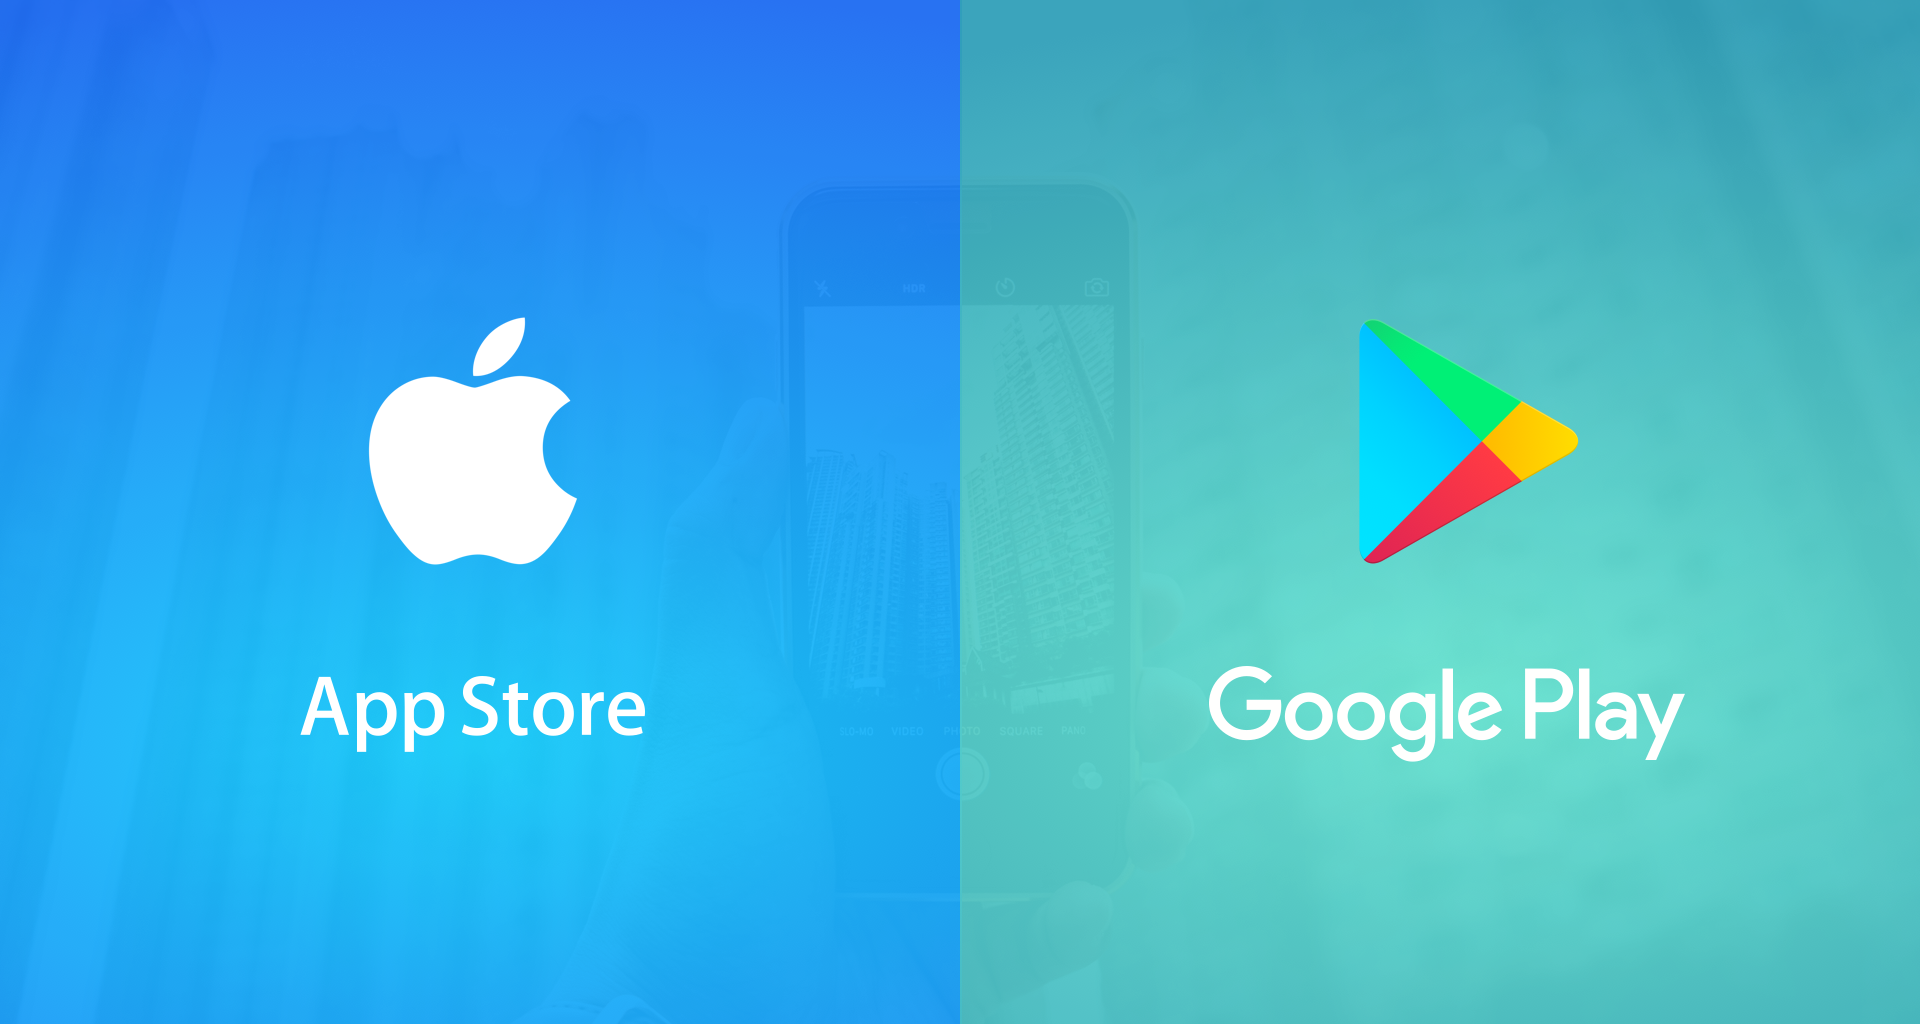 How to get your app featured in the app store and google play?